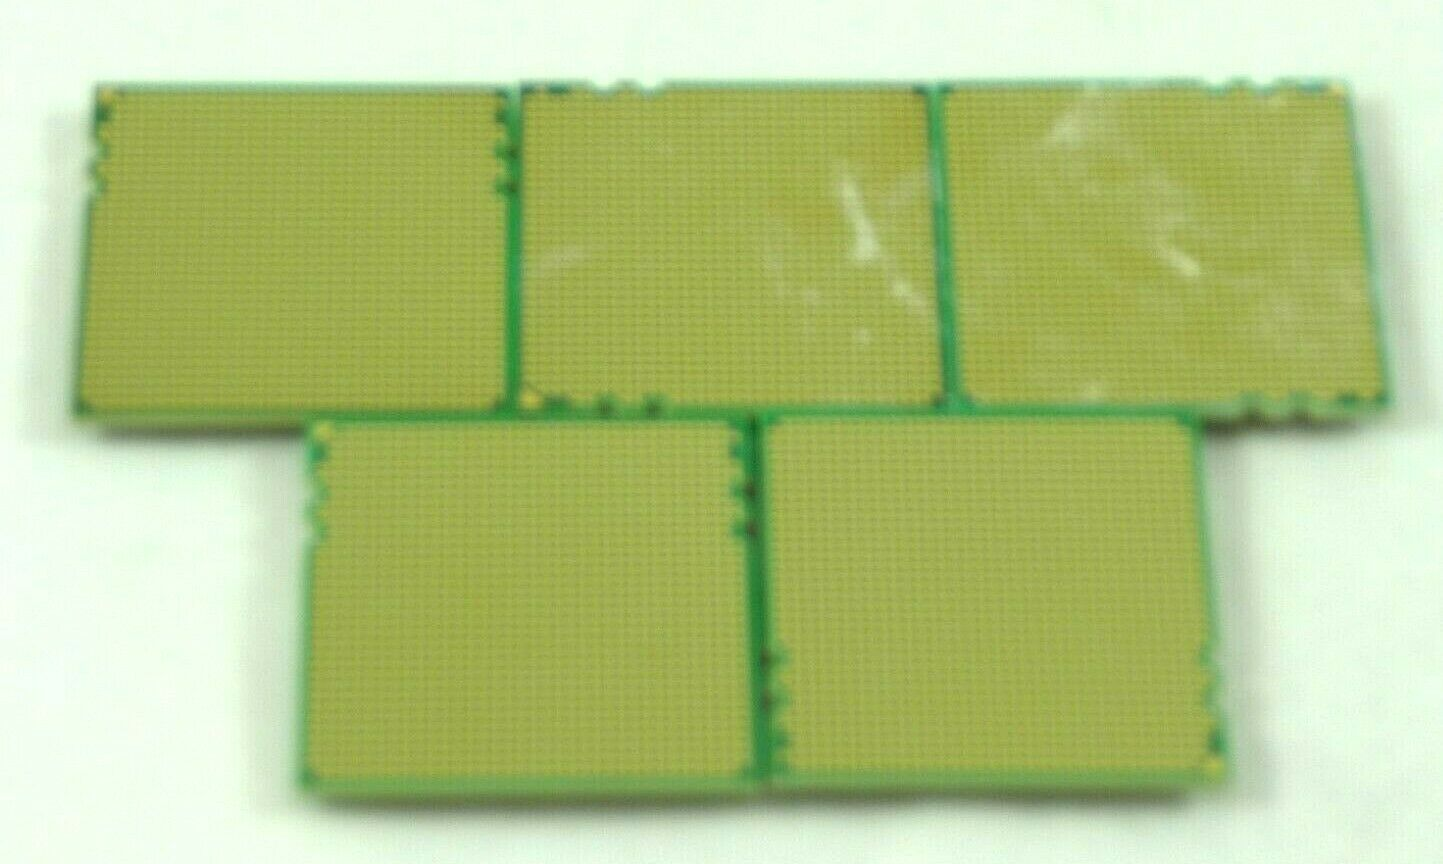 Lot Of 5 AMD Opteron 2216 2.4GHz Dual-Core (OSA2216GAA6CX) Processor CPU - $89.05